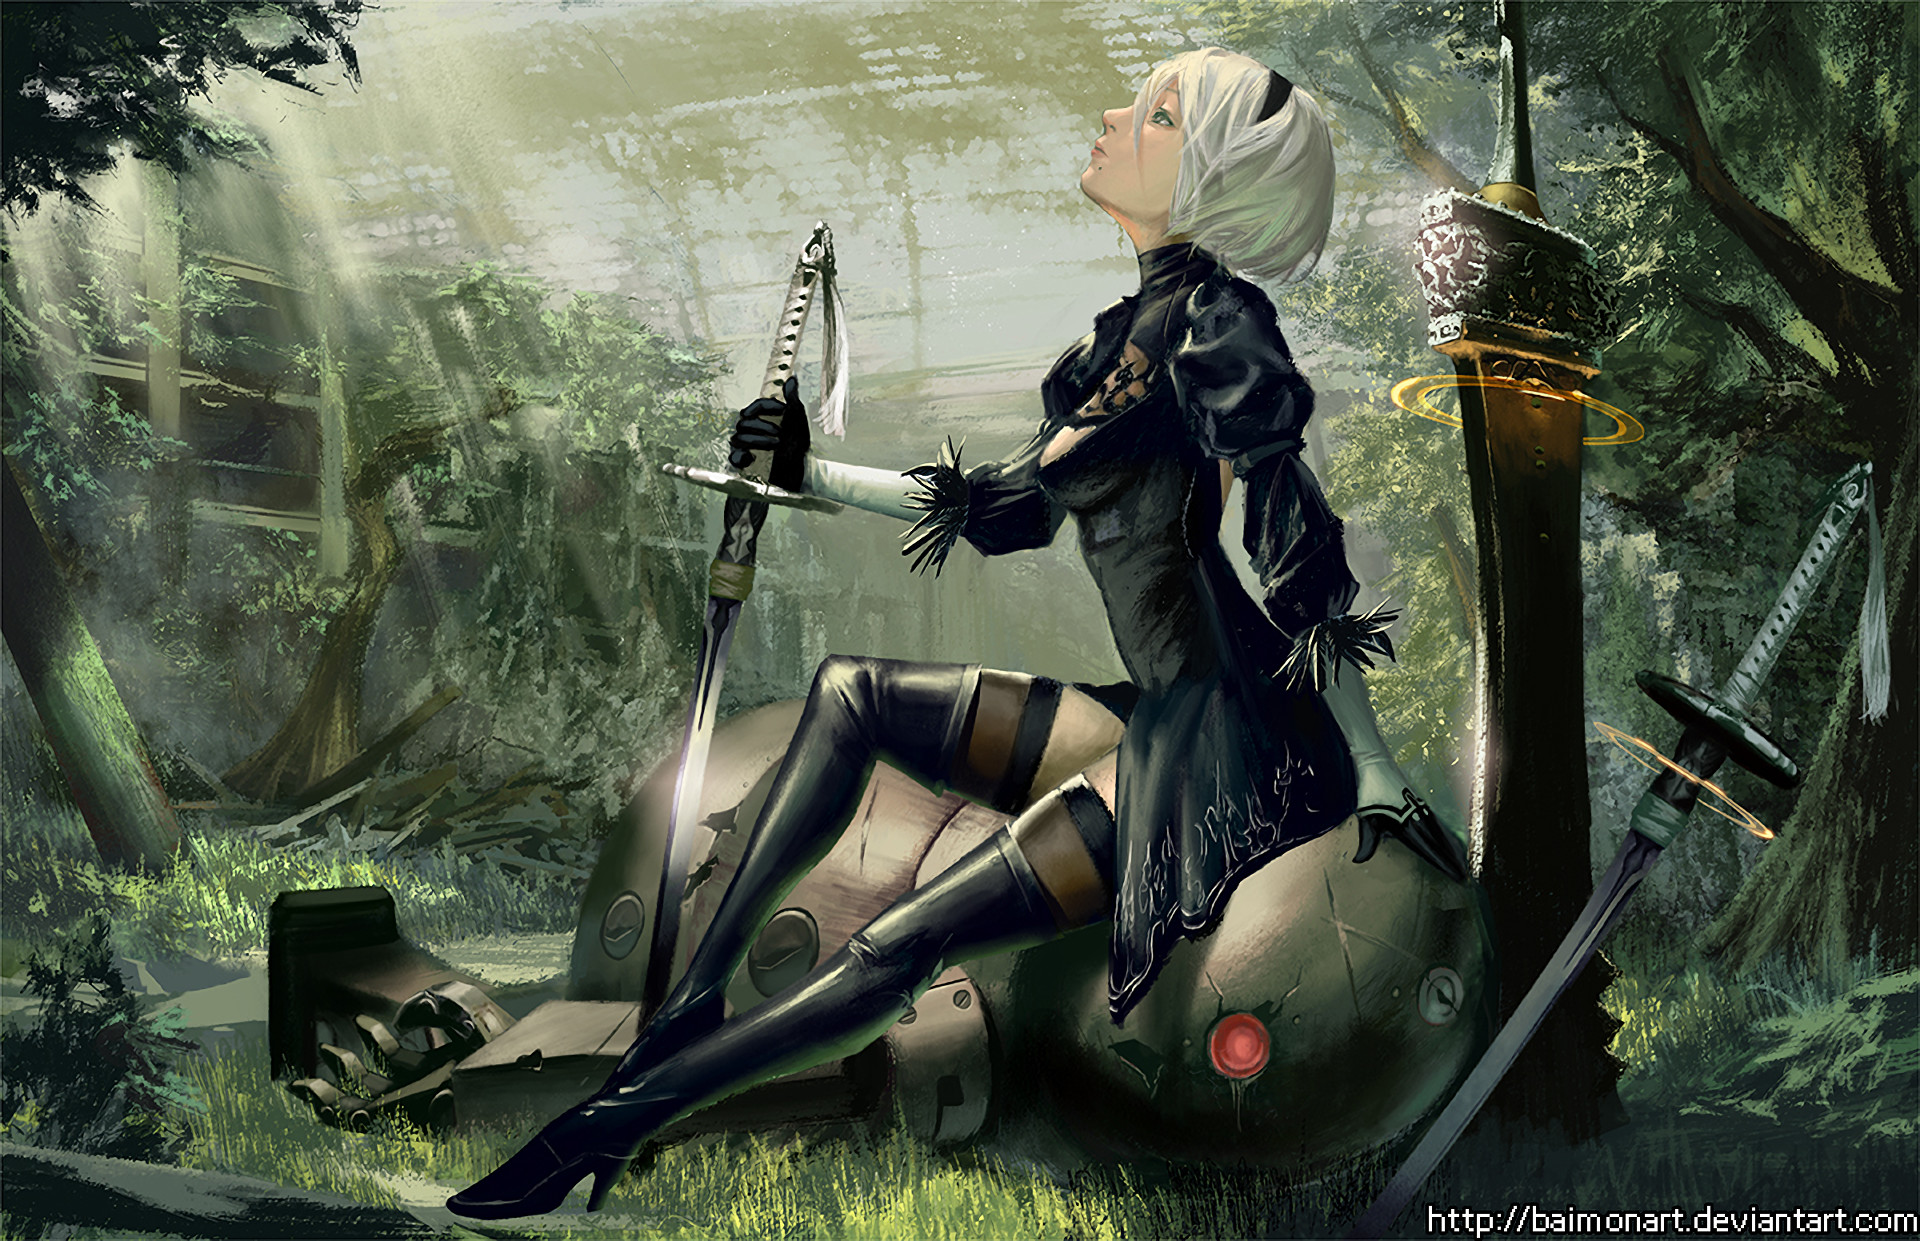 Nier Automata Fan Art Wallpaper 01 1920x1080: Nier Gestalt Wallpaper ·① WallpaperTag